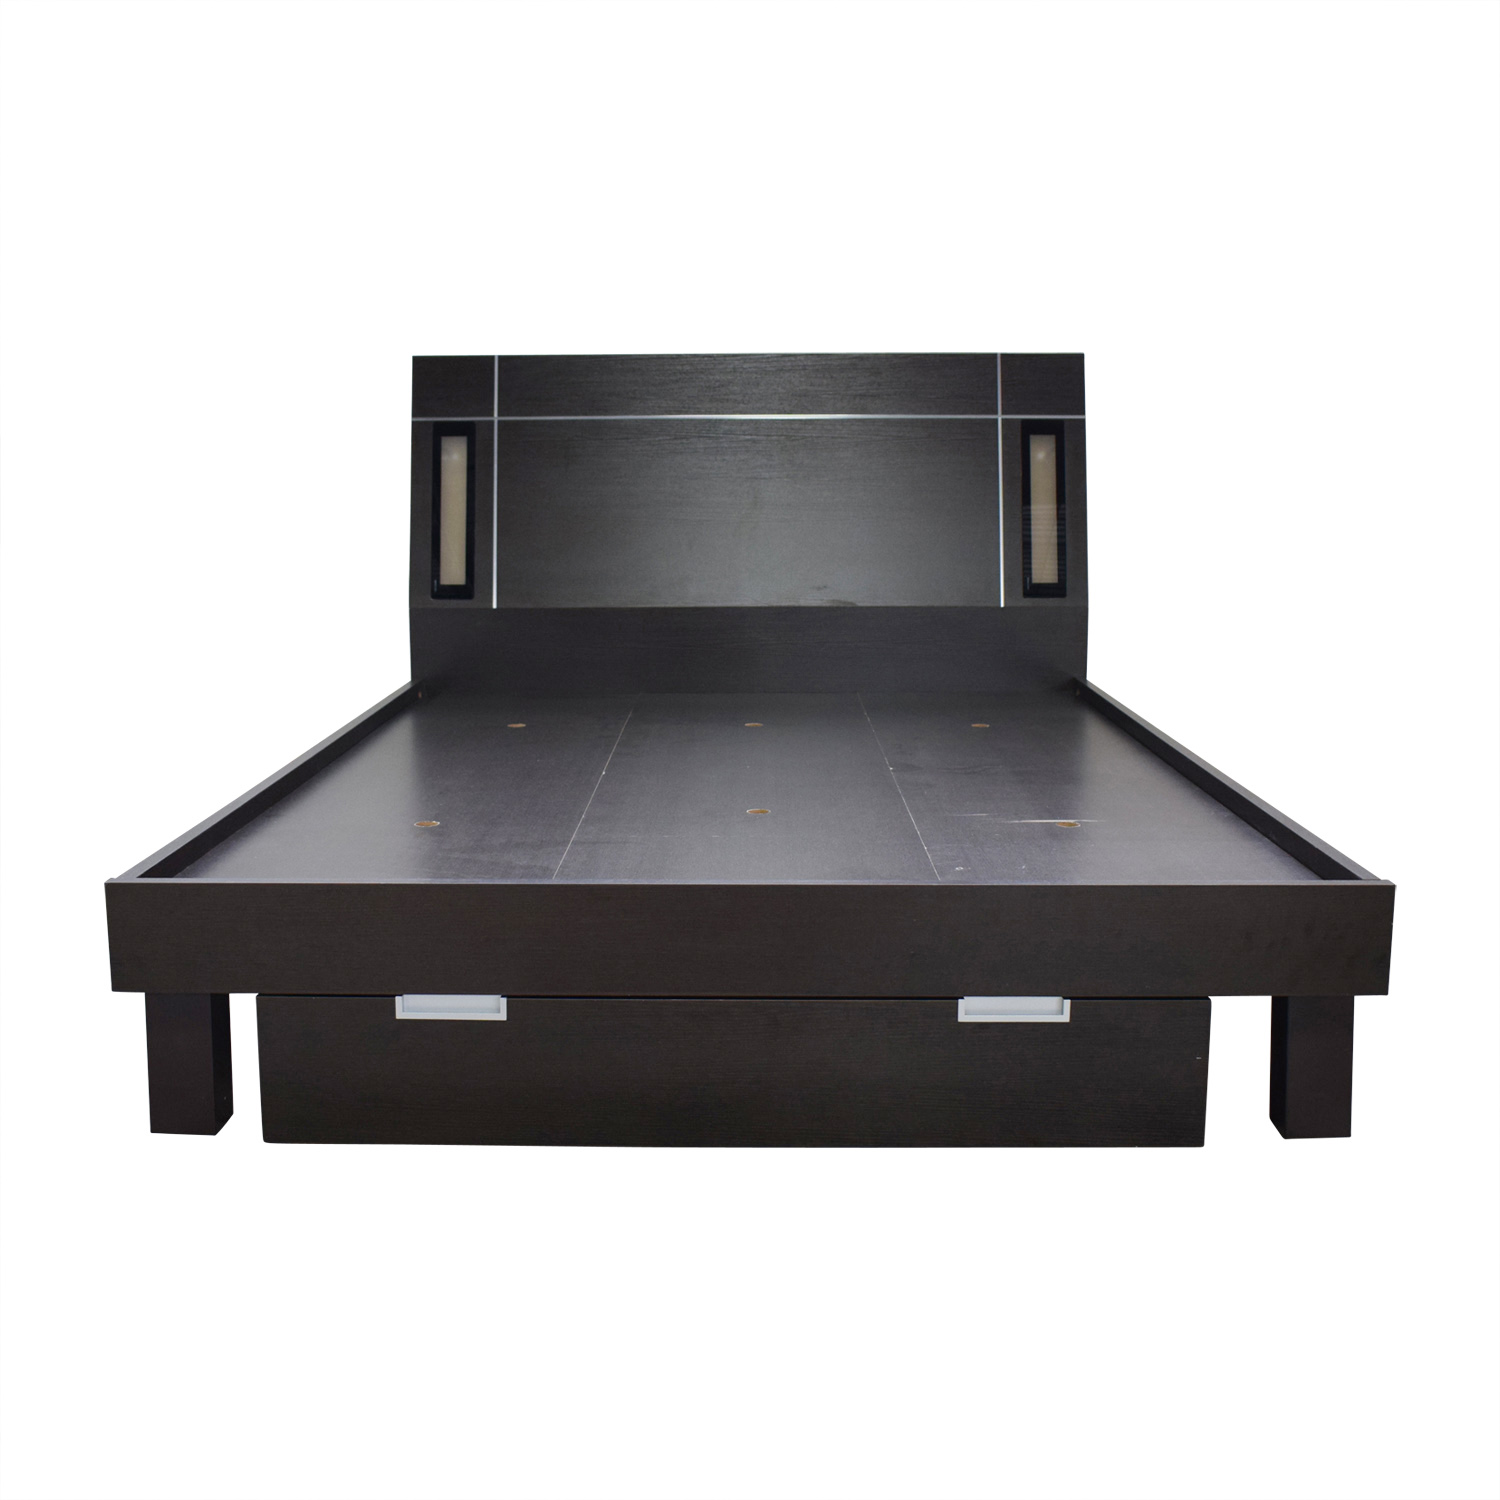 Platform Queen Bed Frame with Lighting and Storage for sale